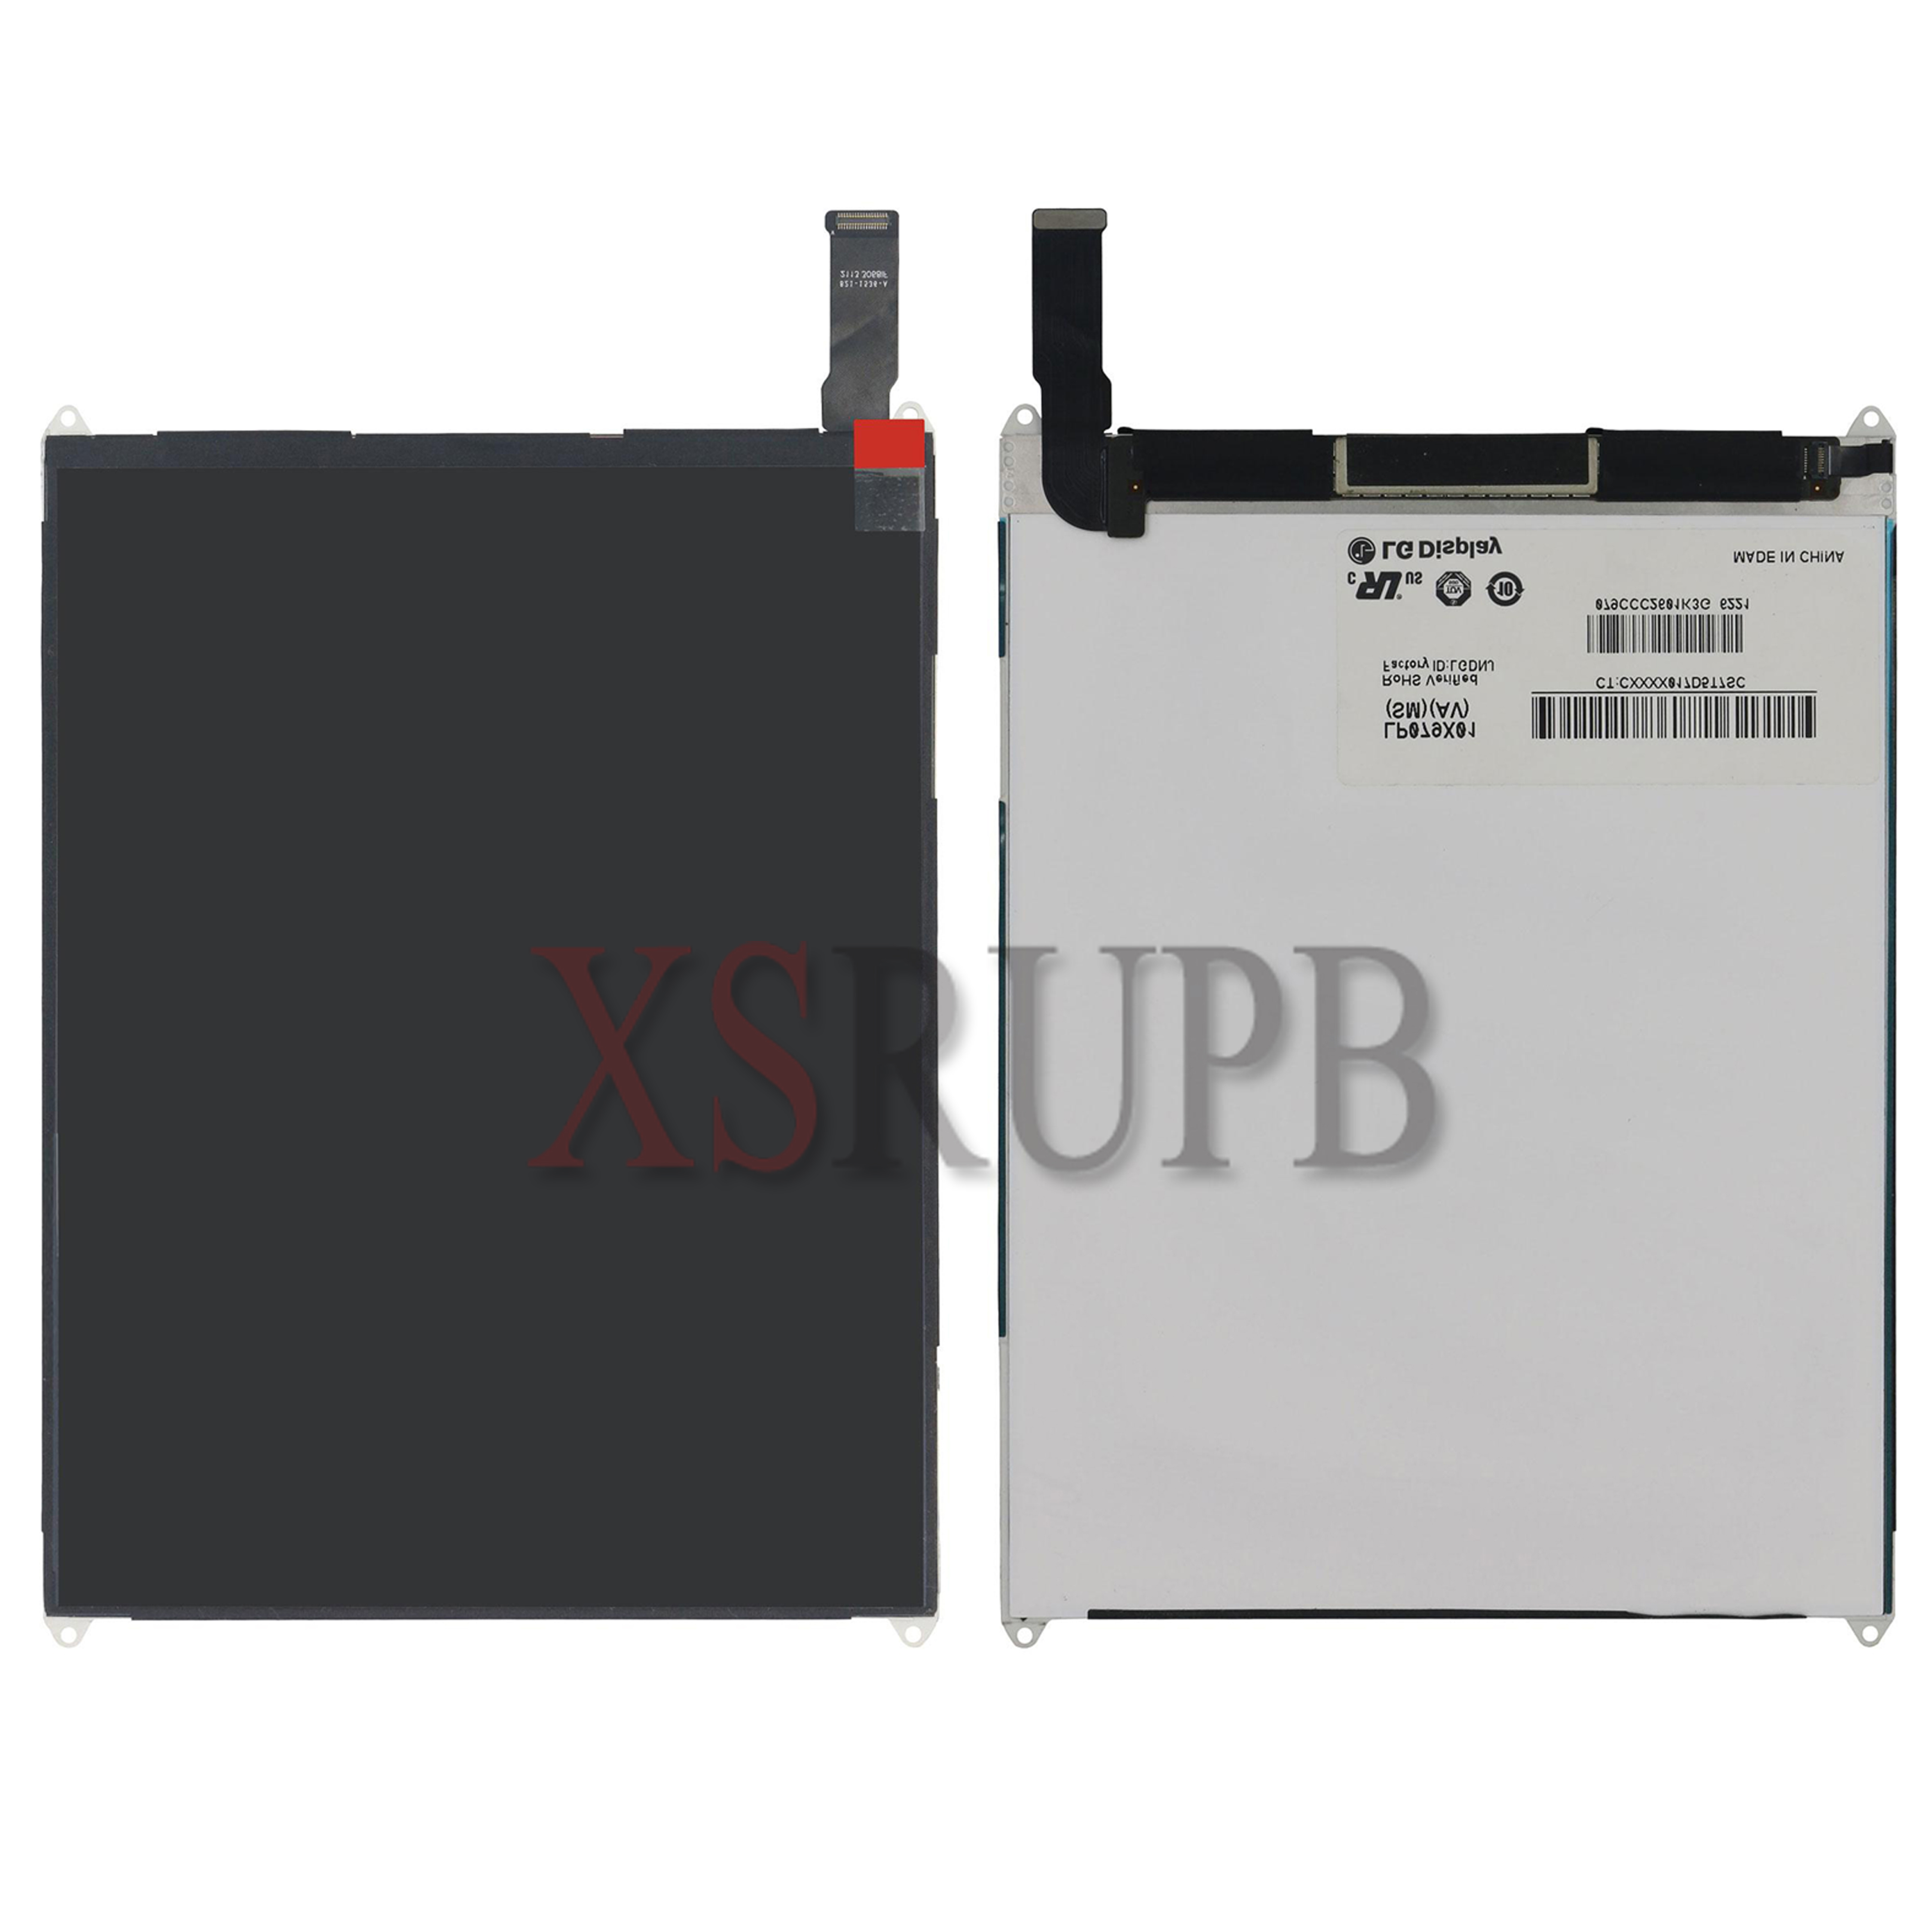 8 lcd screen display matrix For ZTE PAD E8Q1 e-learning tablet pc Replacement + Free shipping 6inch lcd display matrix with light for qumo libro lux ii e book free shipping